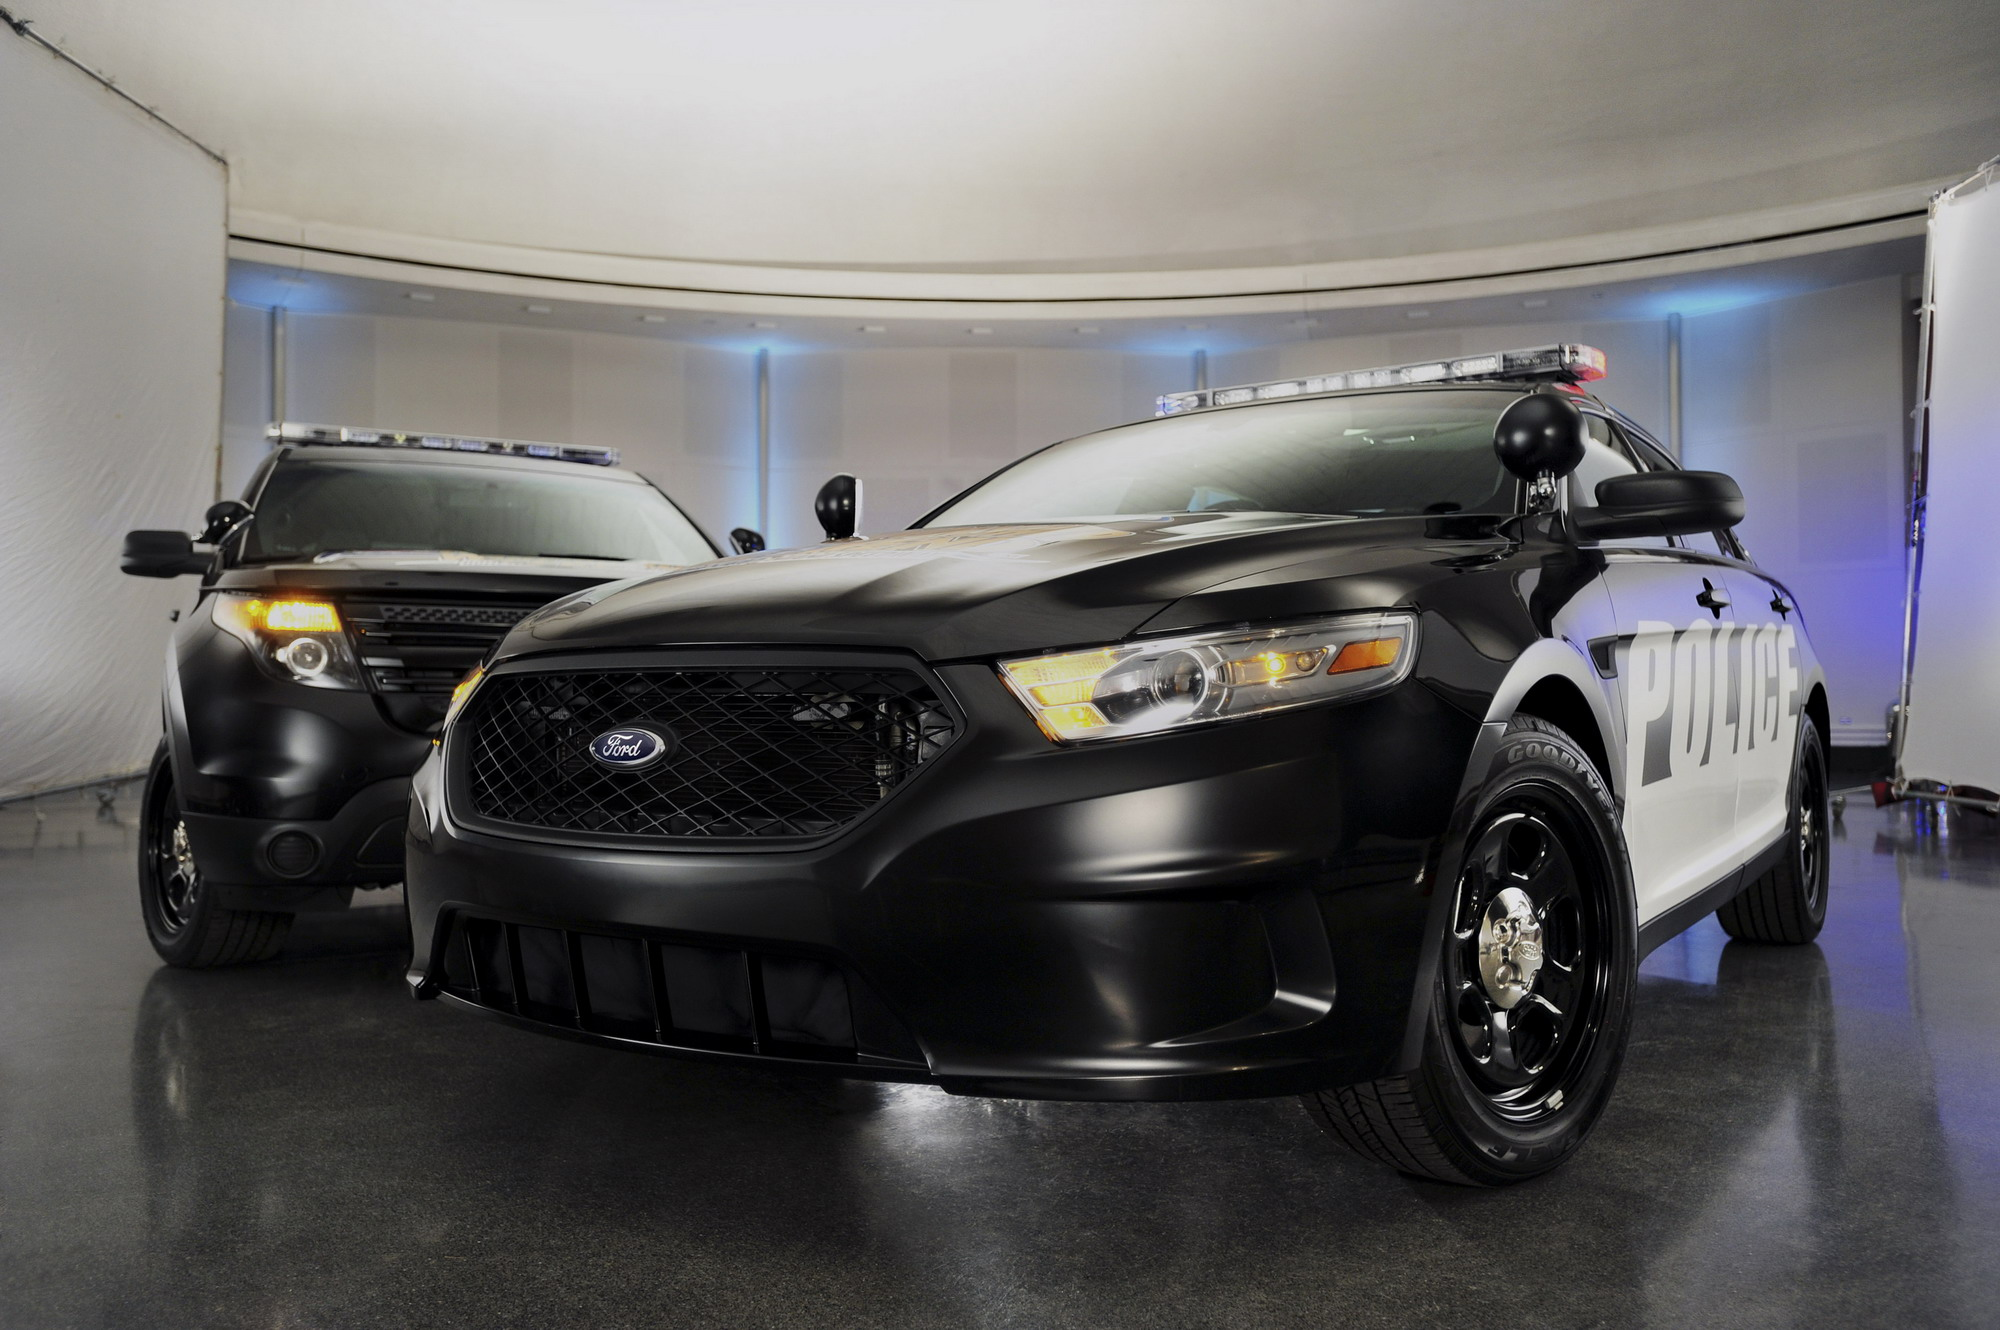 Ford has announced details on their 2013 Police Interceptor models - both sedan and utility vehicles. The two police cars will make their debut at the Ford ... & 2013 Ford Police Interceptor Review - Top Speed markmcfarlin.com